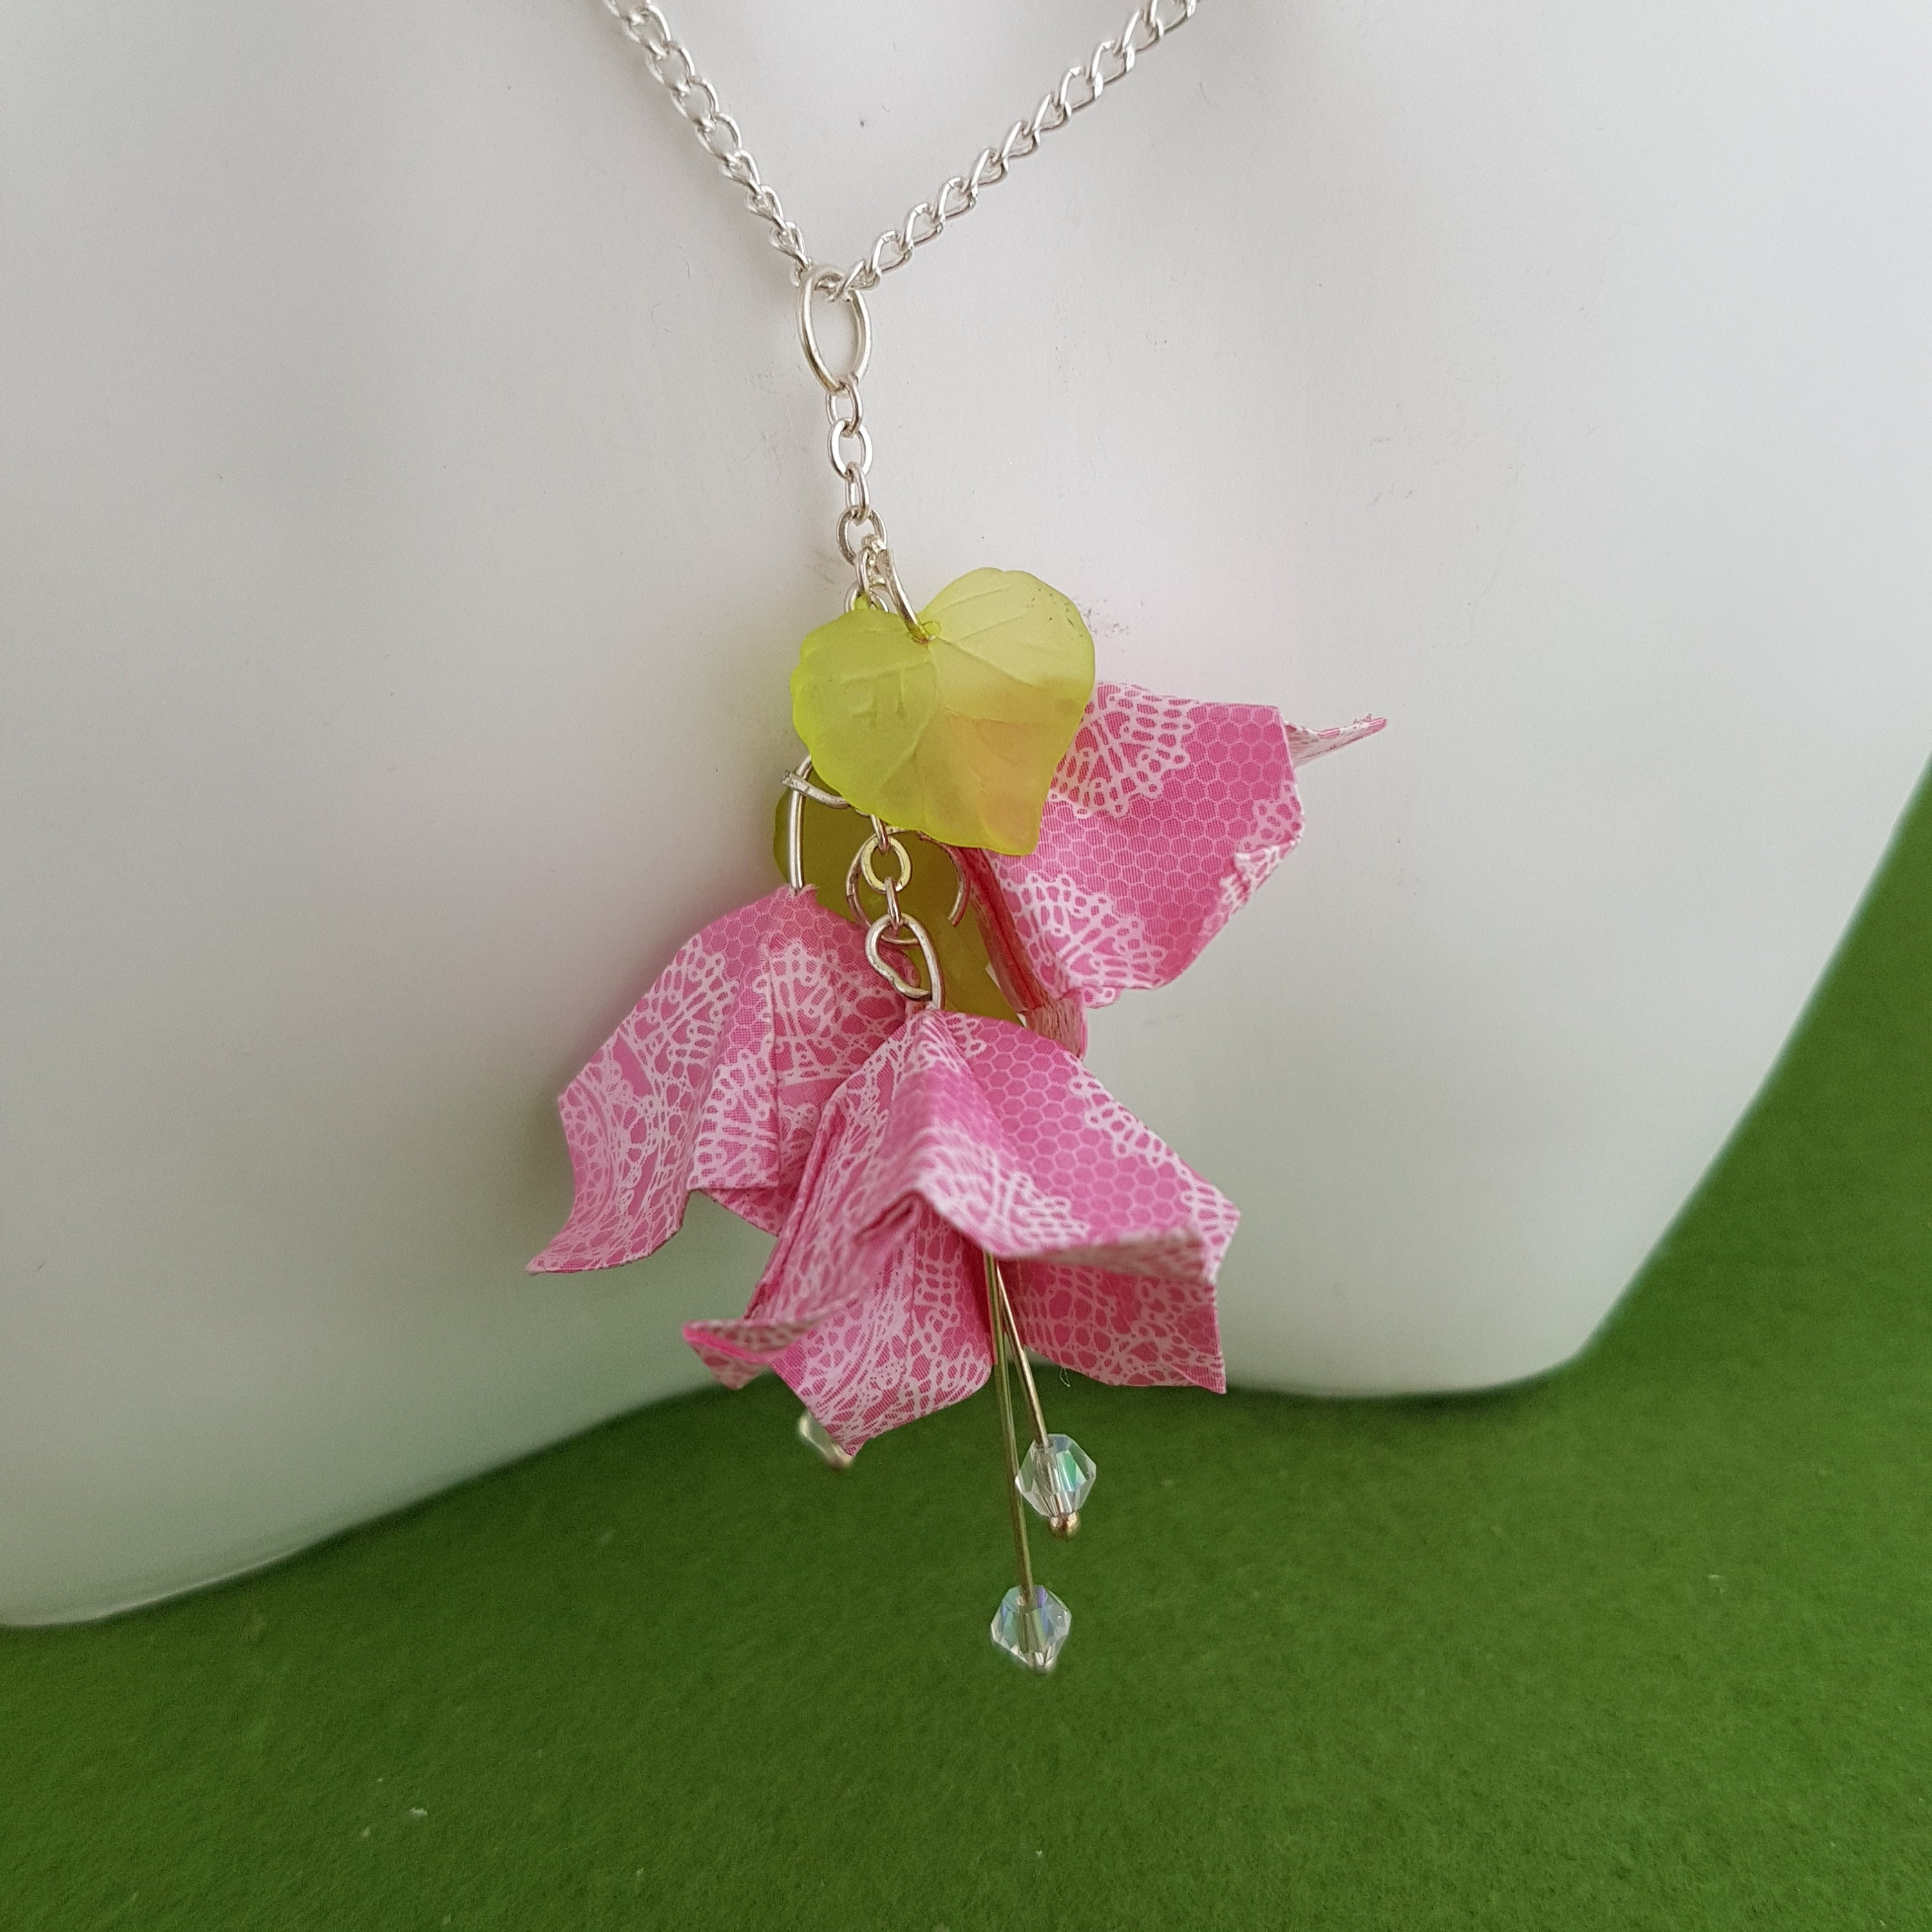 Paper Flower Necklace Tutorial | Diy jewelry inspiration, Paper ... | 3000x3000